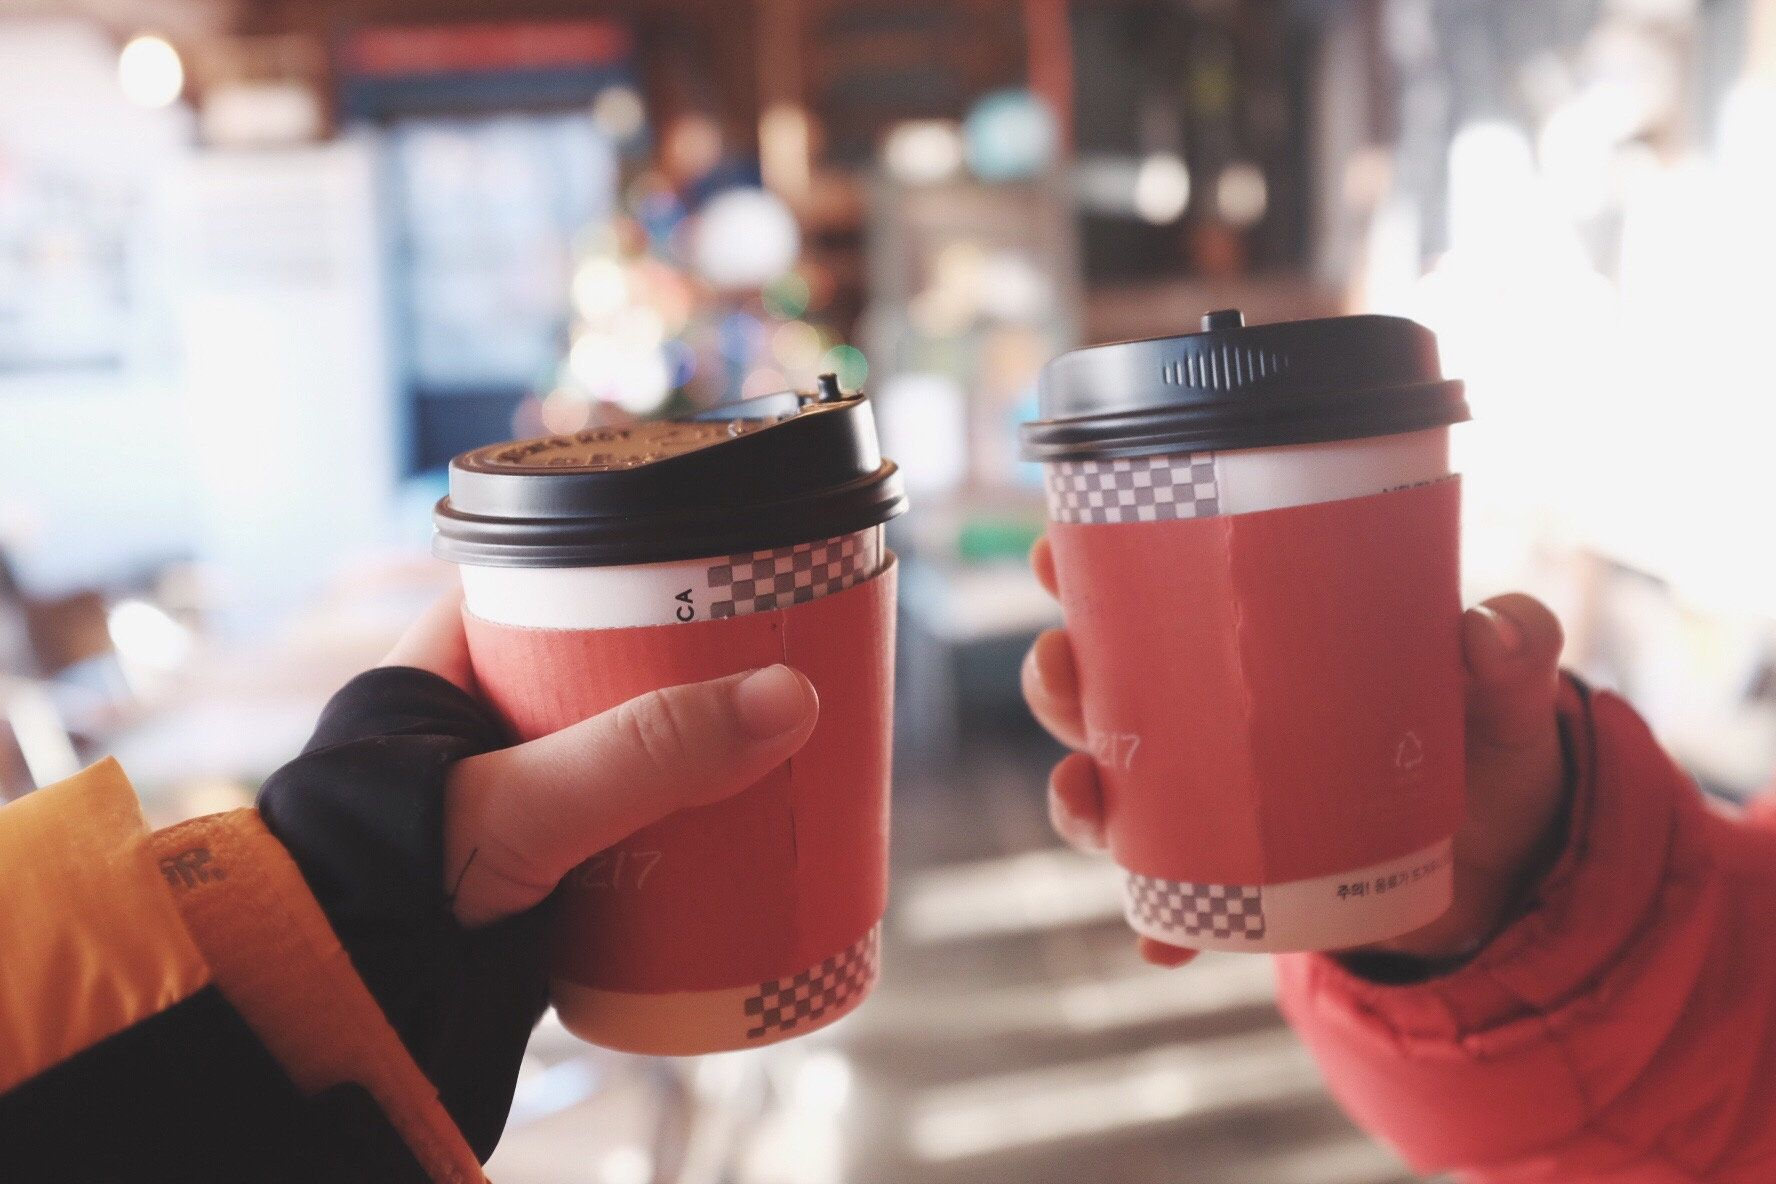 <strong>A petition calling for a charge on disposable cups&nbsp;has so far attracted more than 30,000 signatures</strong>